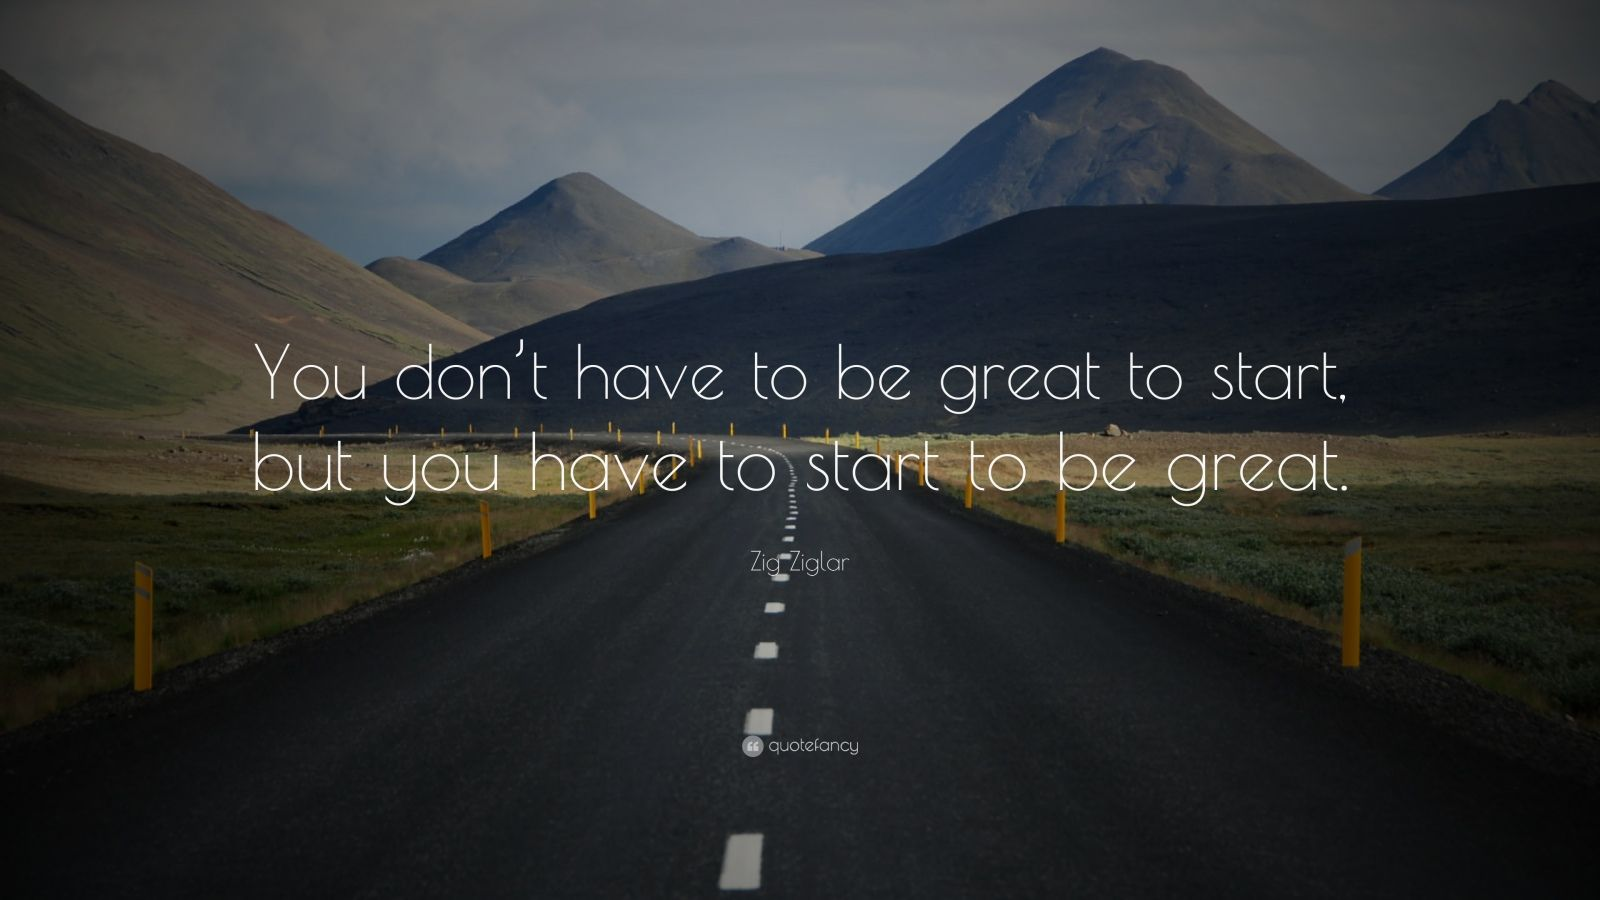 """Zig Ziglar Quote: """"You don't have to be great to start, but you have to start to be great."""""""